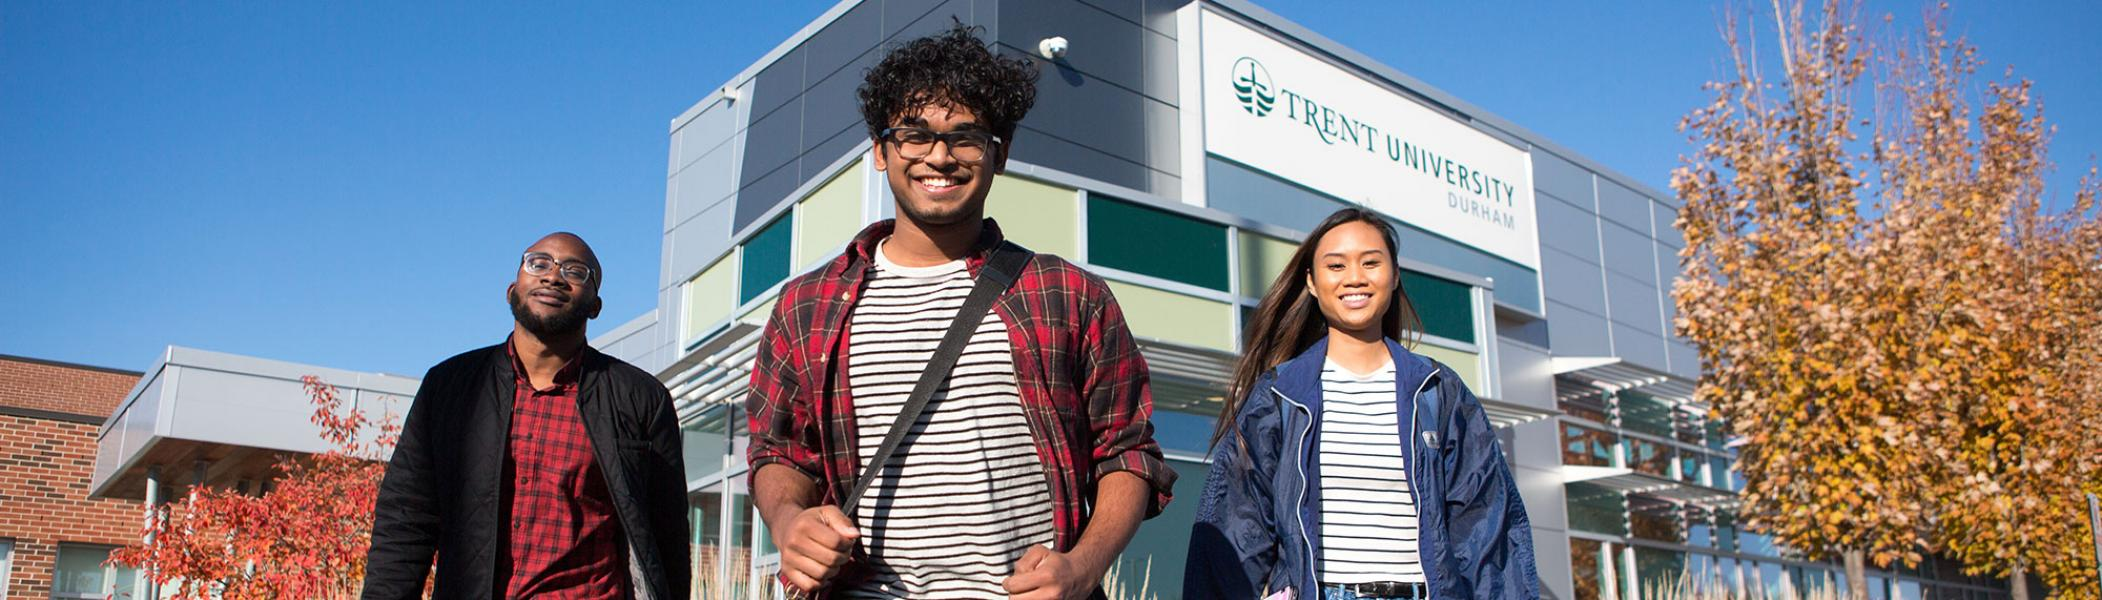 Trent University Durham students smiling to the camera in front of campus.